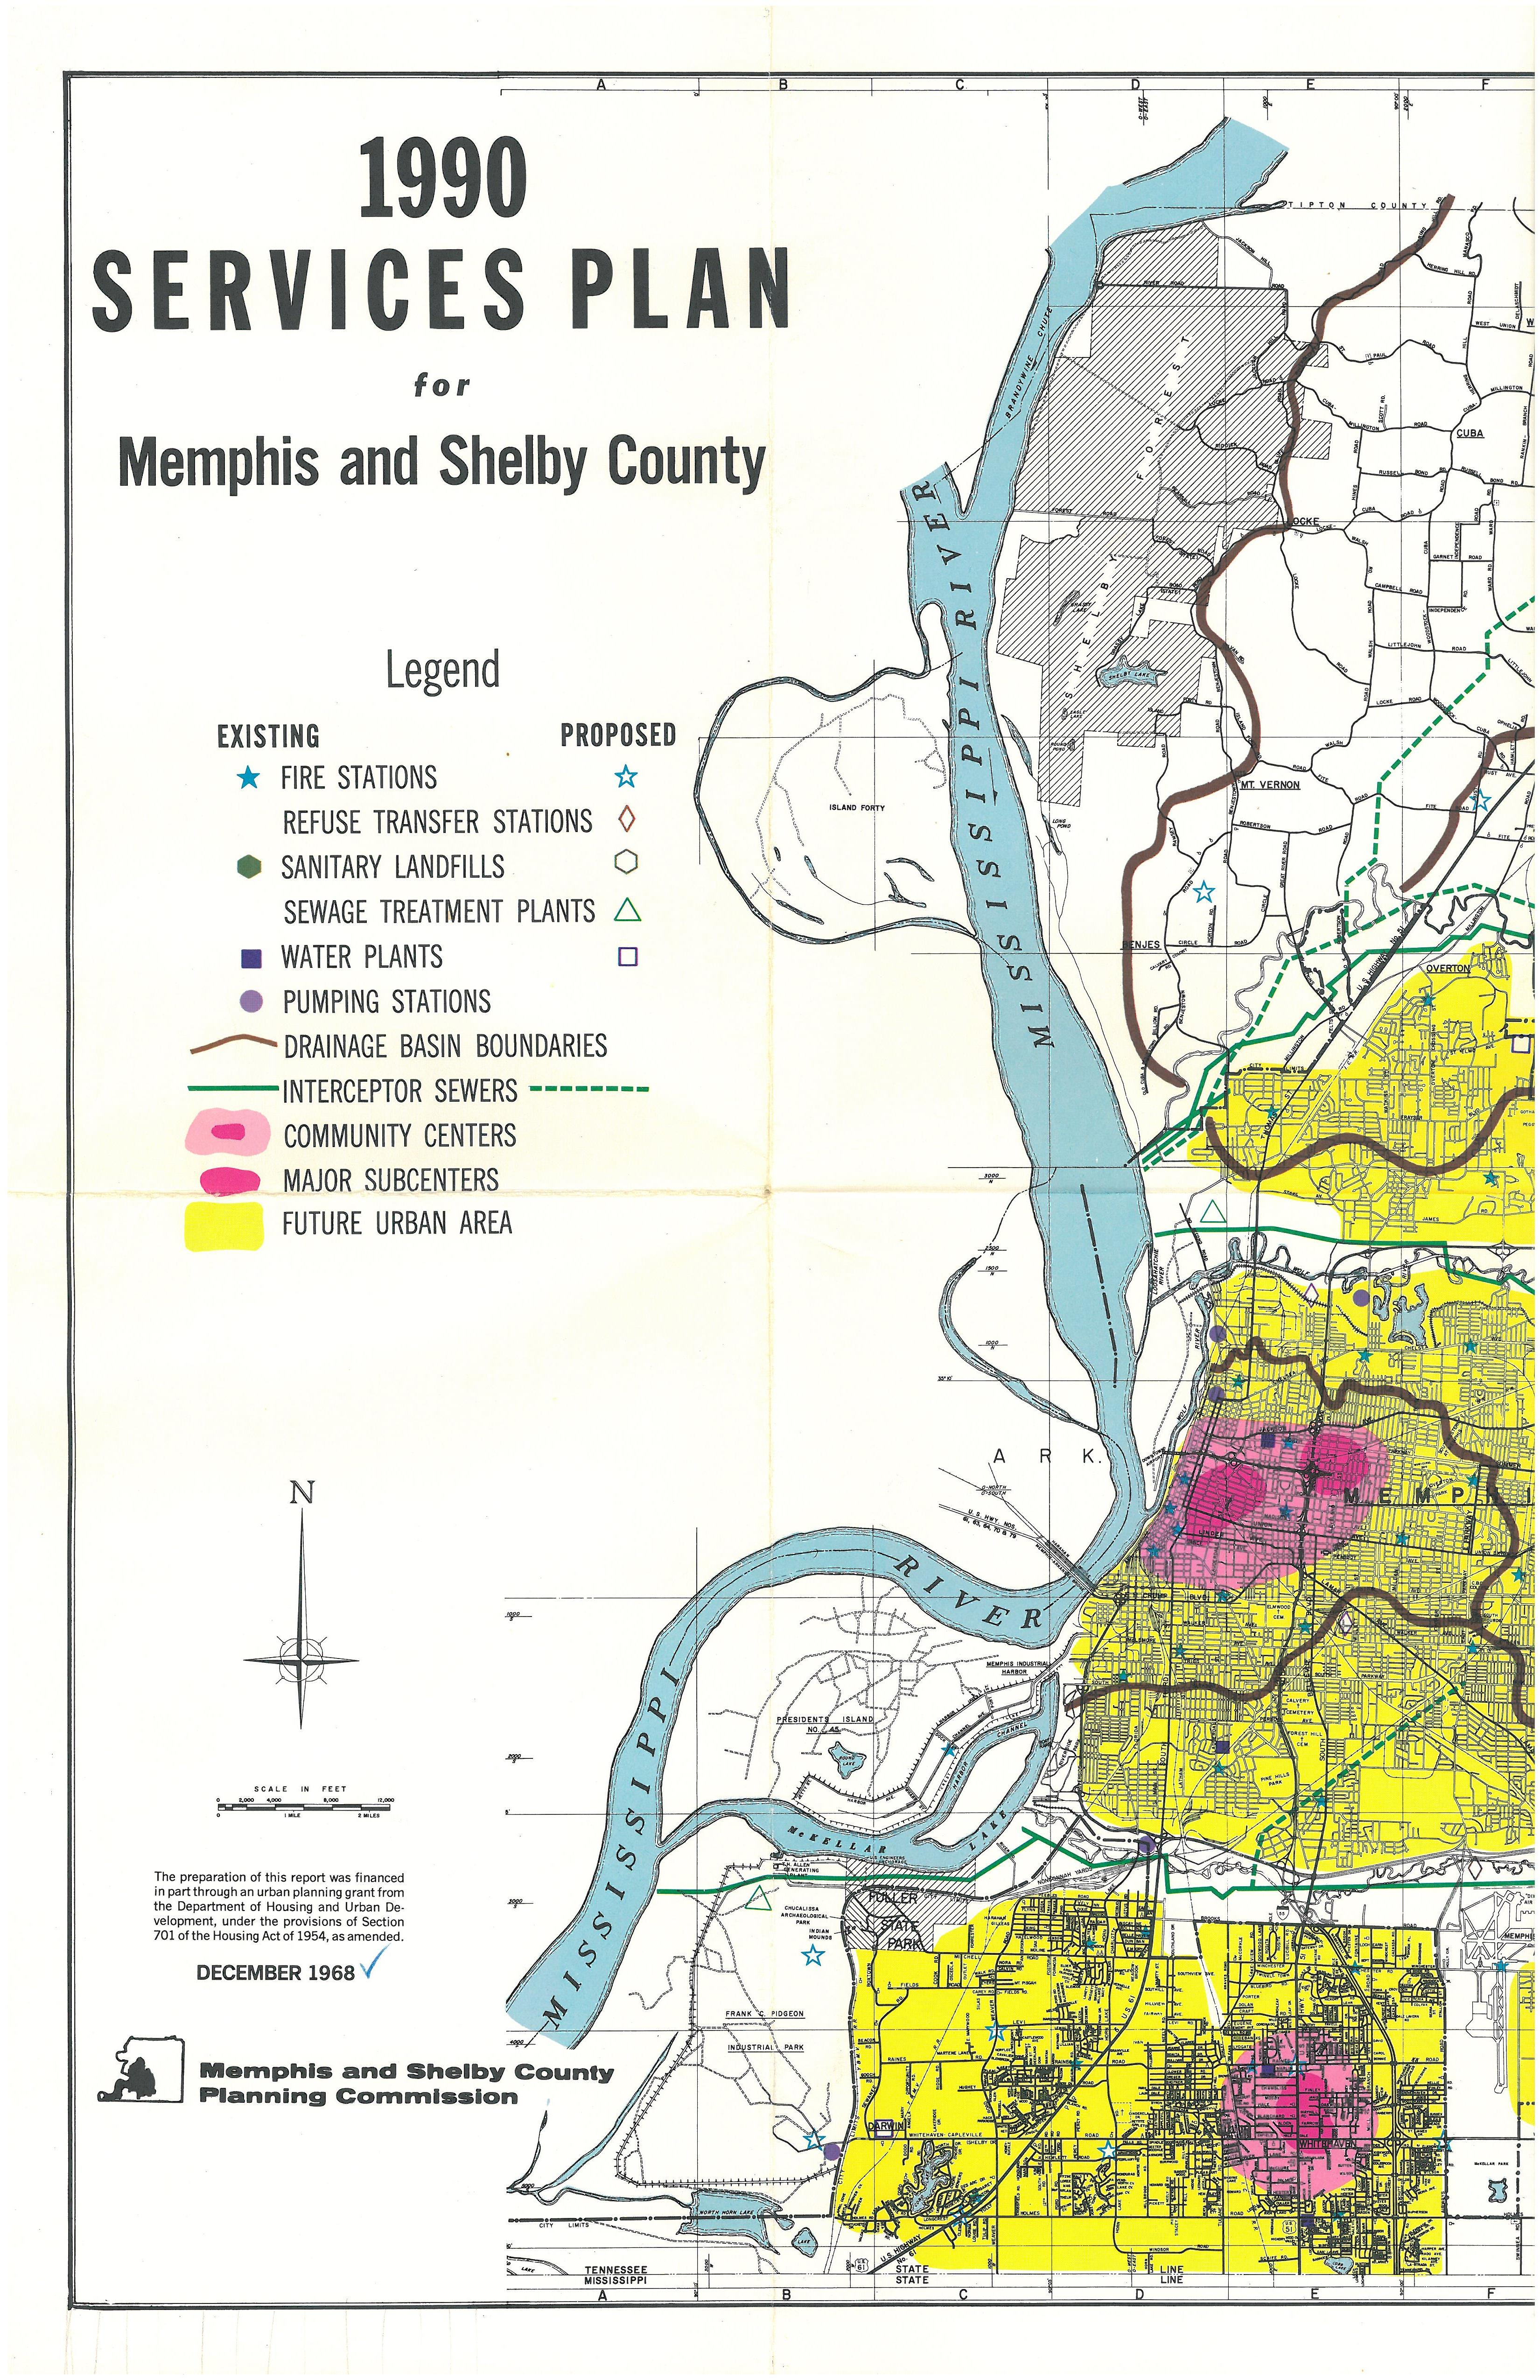 Neighborhood and Comprehensive Plans | Shelby County, TN ... on arlington tn map, bollinger county tn map, christian county tn map, lancaster county pa school districts map, jefferson county tn map, baker county tn map, madison county tn map, millington tn map, mcnairy county tn map, knox county tn map, shelby ms map, oakland tn map, sumter county tn map, washington county tn map, hamilton county tn road map, springfield tn map, greeneville tn map, fayette county tn map, loudoun county tn map, williams county tn map,